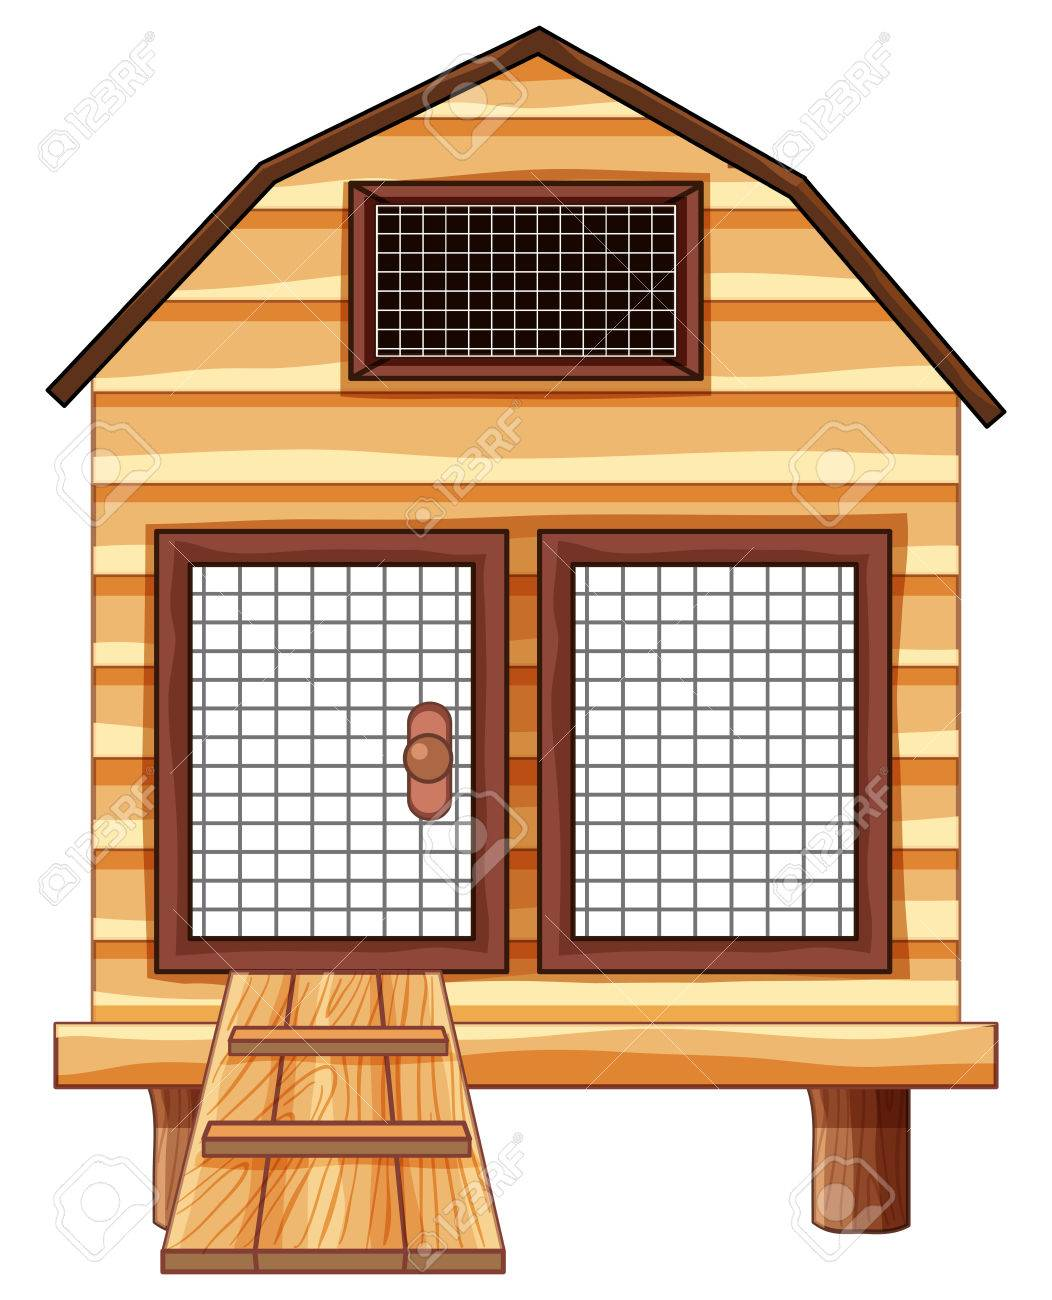 Chicken Coop Made Of Wood Illustration Stock Vector